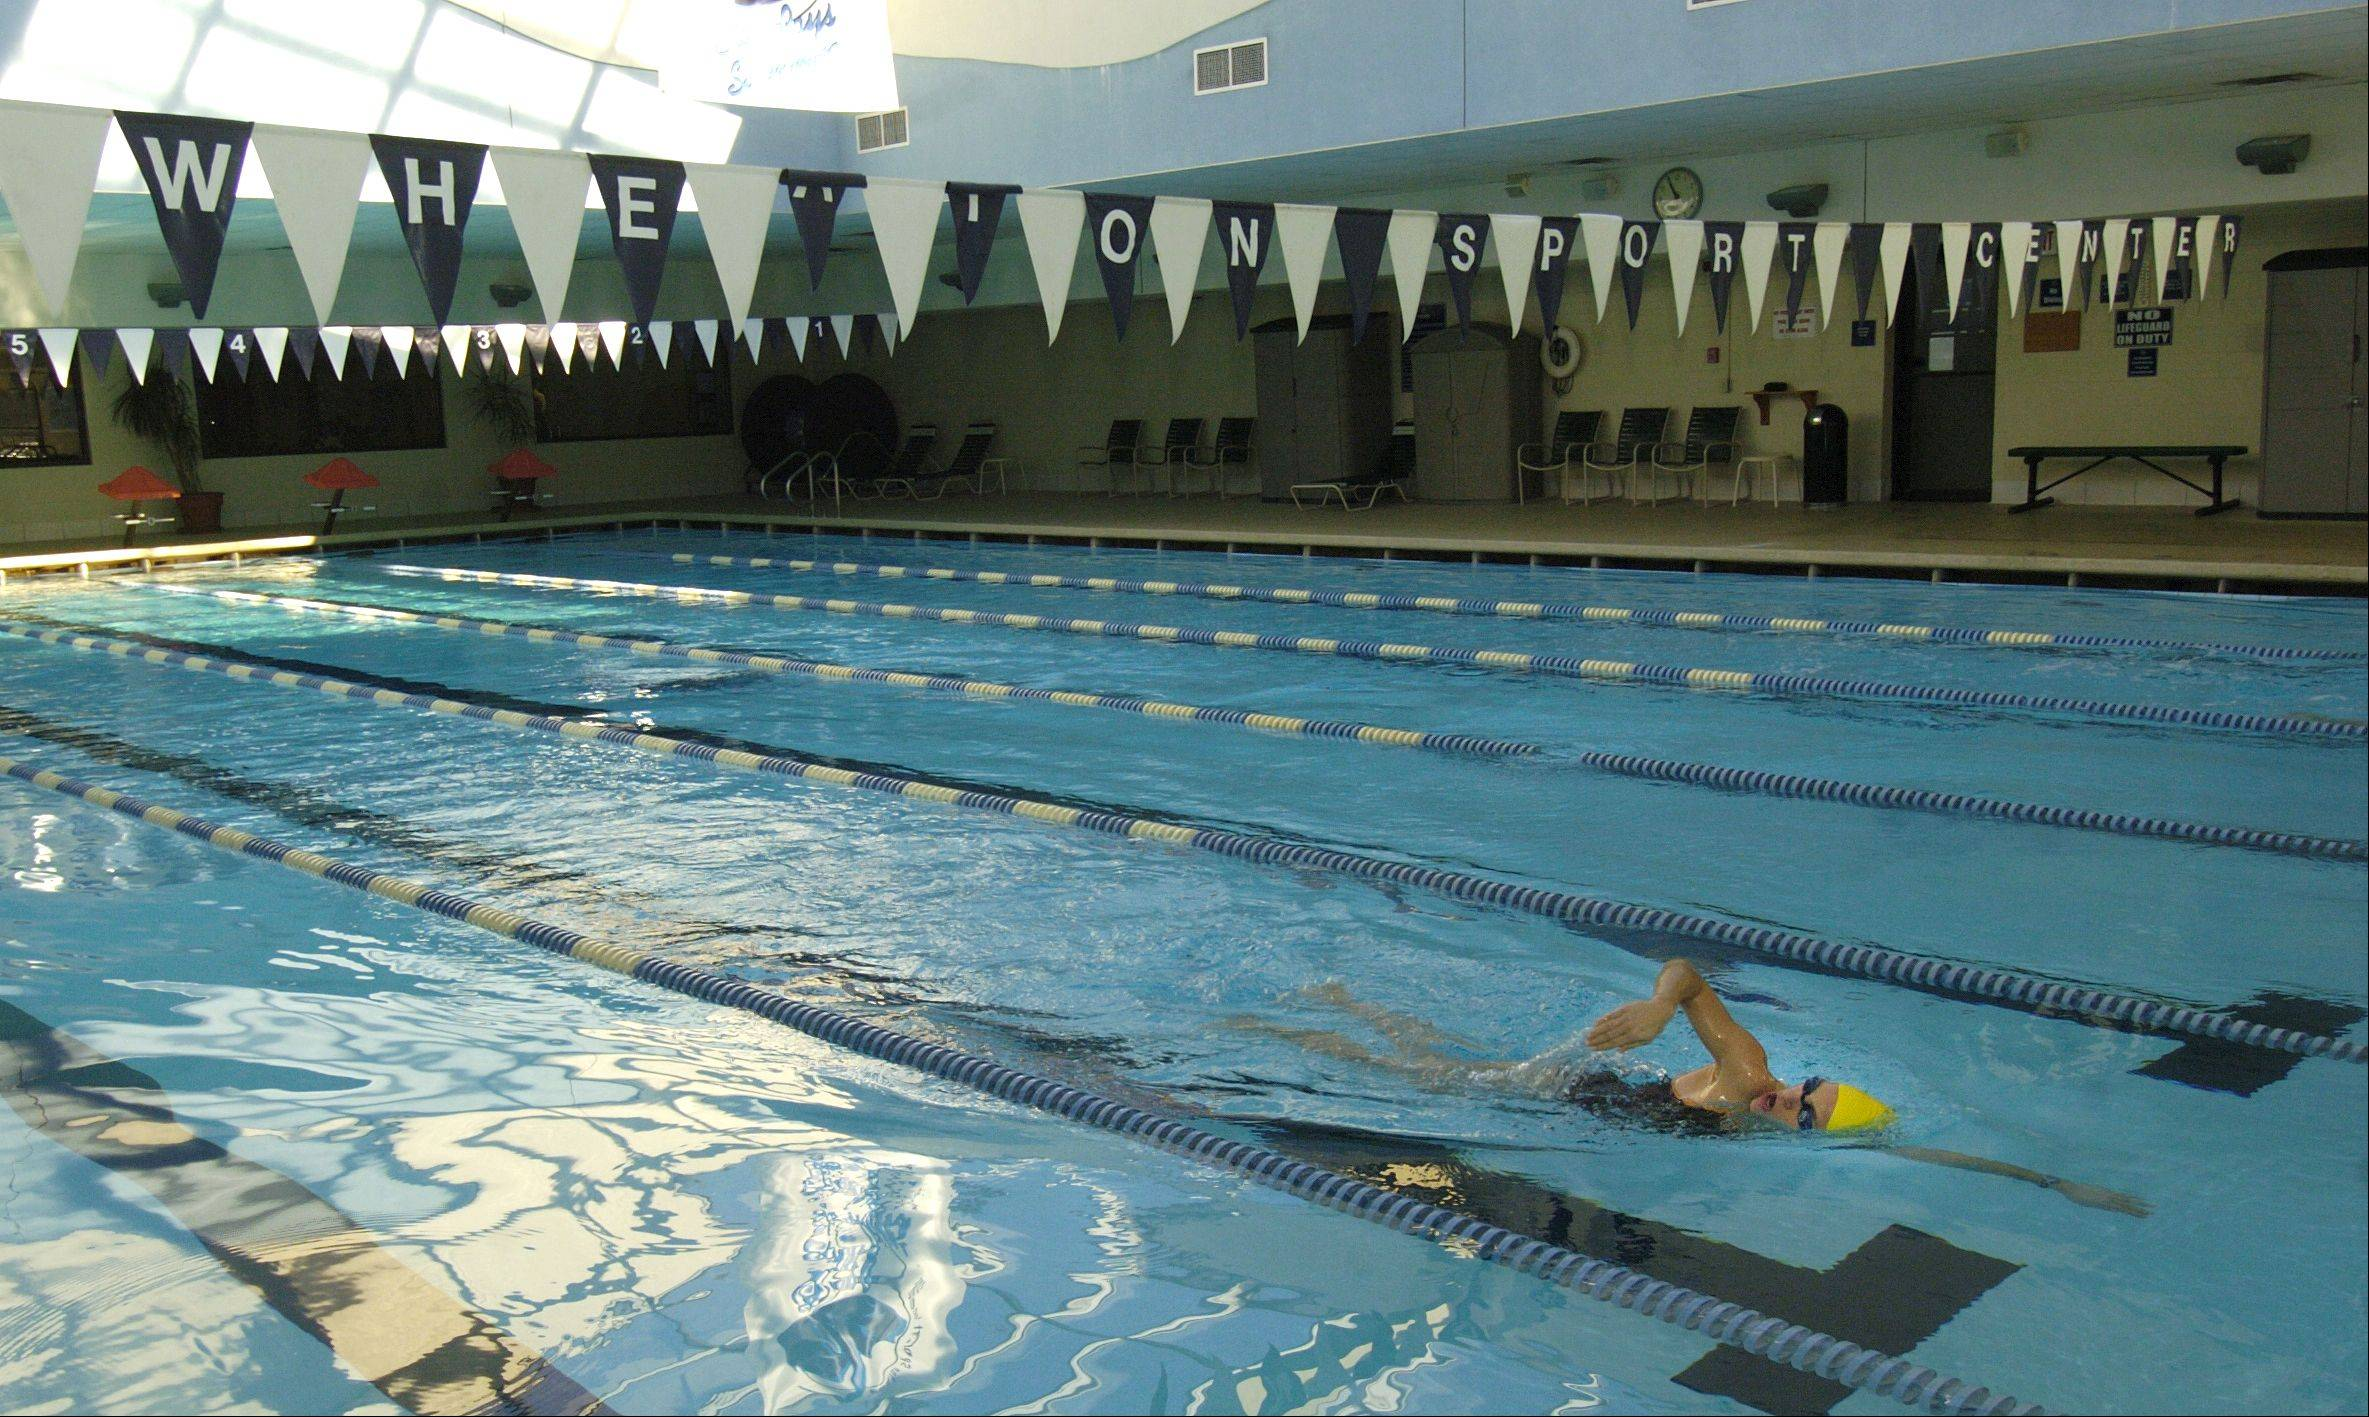 The main lap pool at the Wheaton Sports Center complies with federal and state safety rules that require new pool drain covers. Still, the club is on the state's list of noncompliant swimming facilities because drain repairs on two of its hot tubs haven't been made.